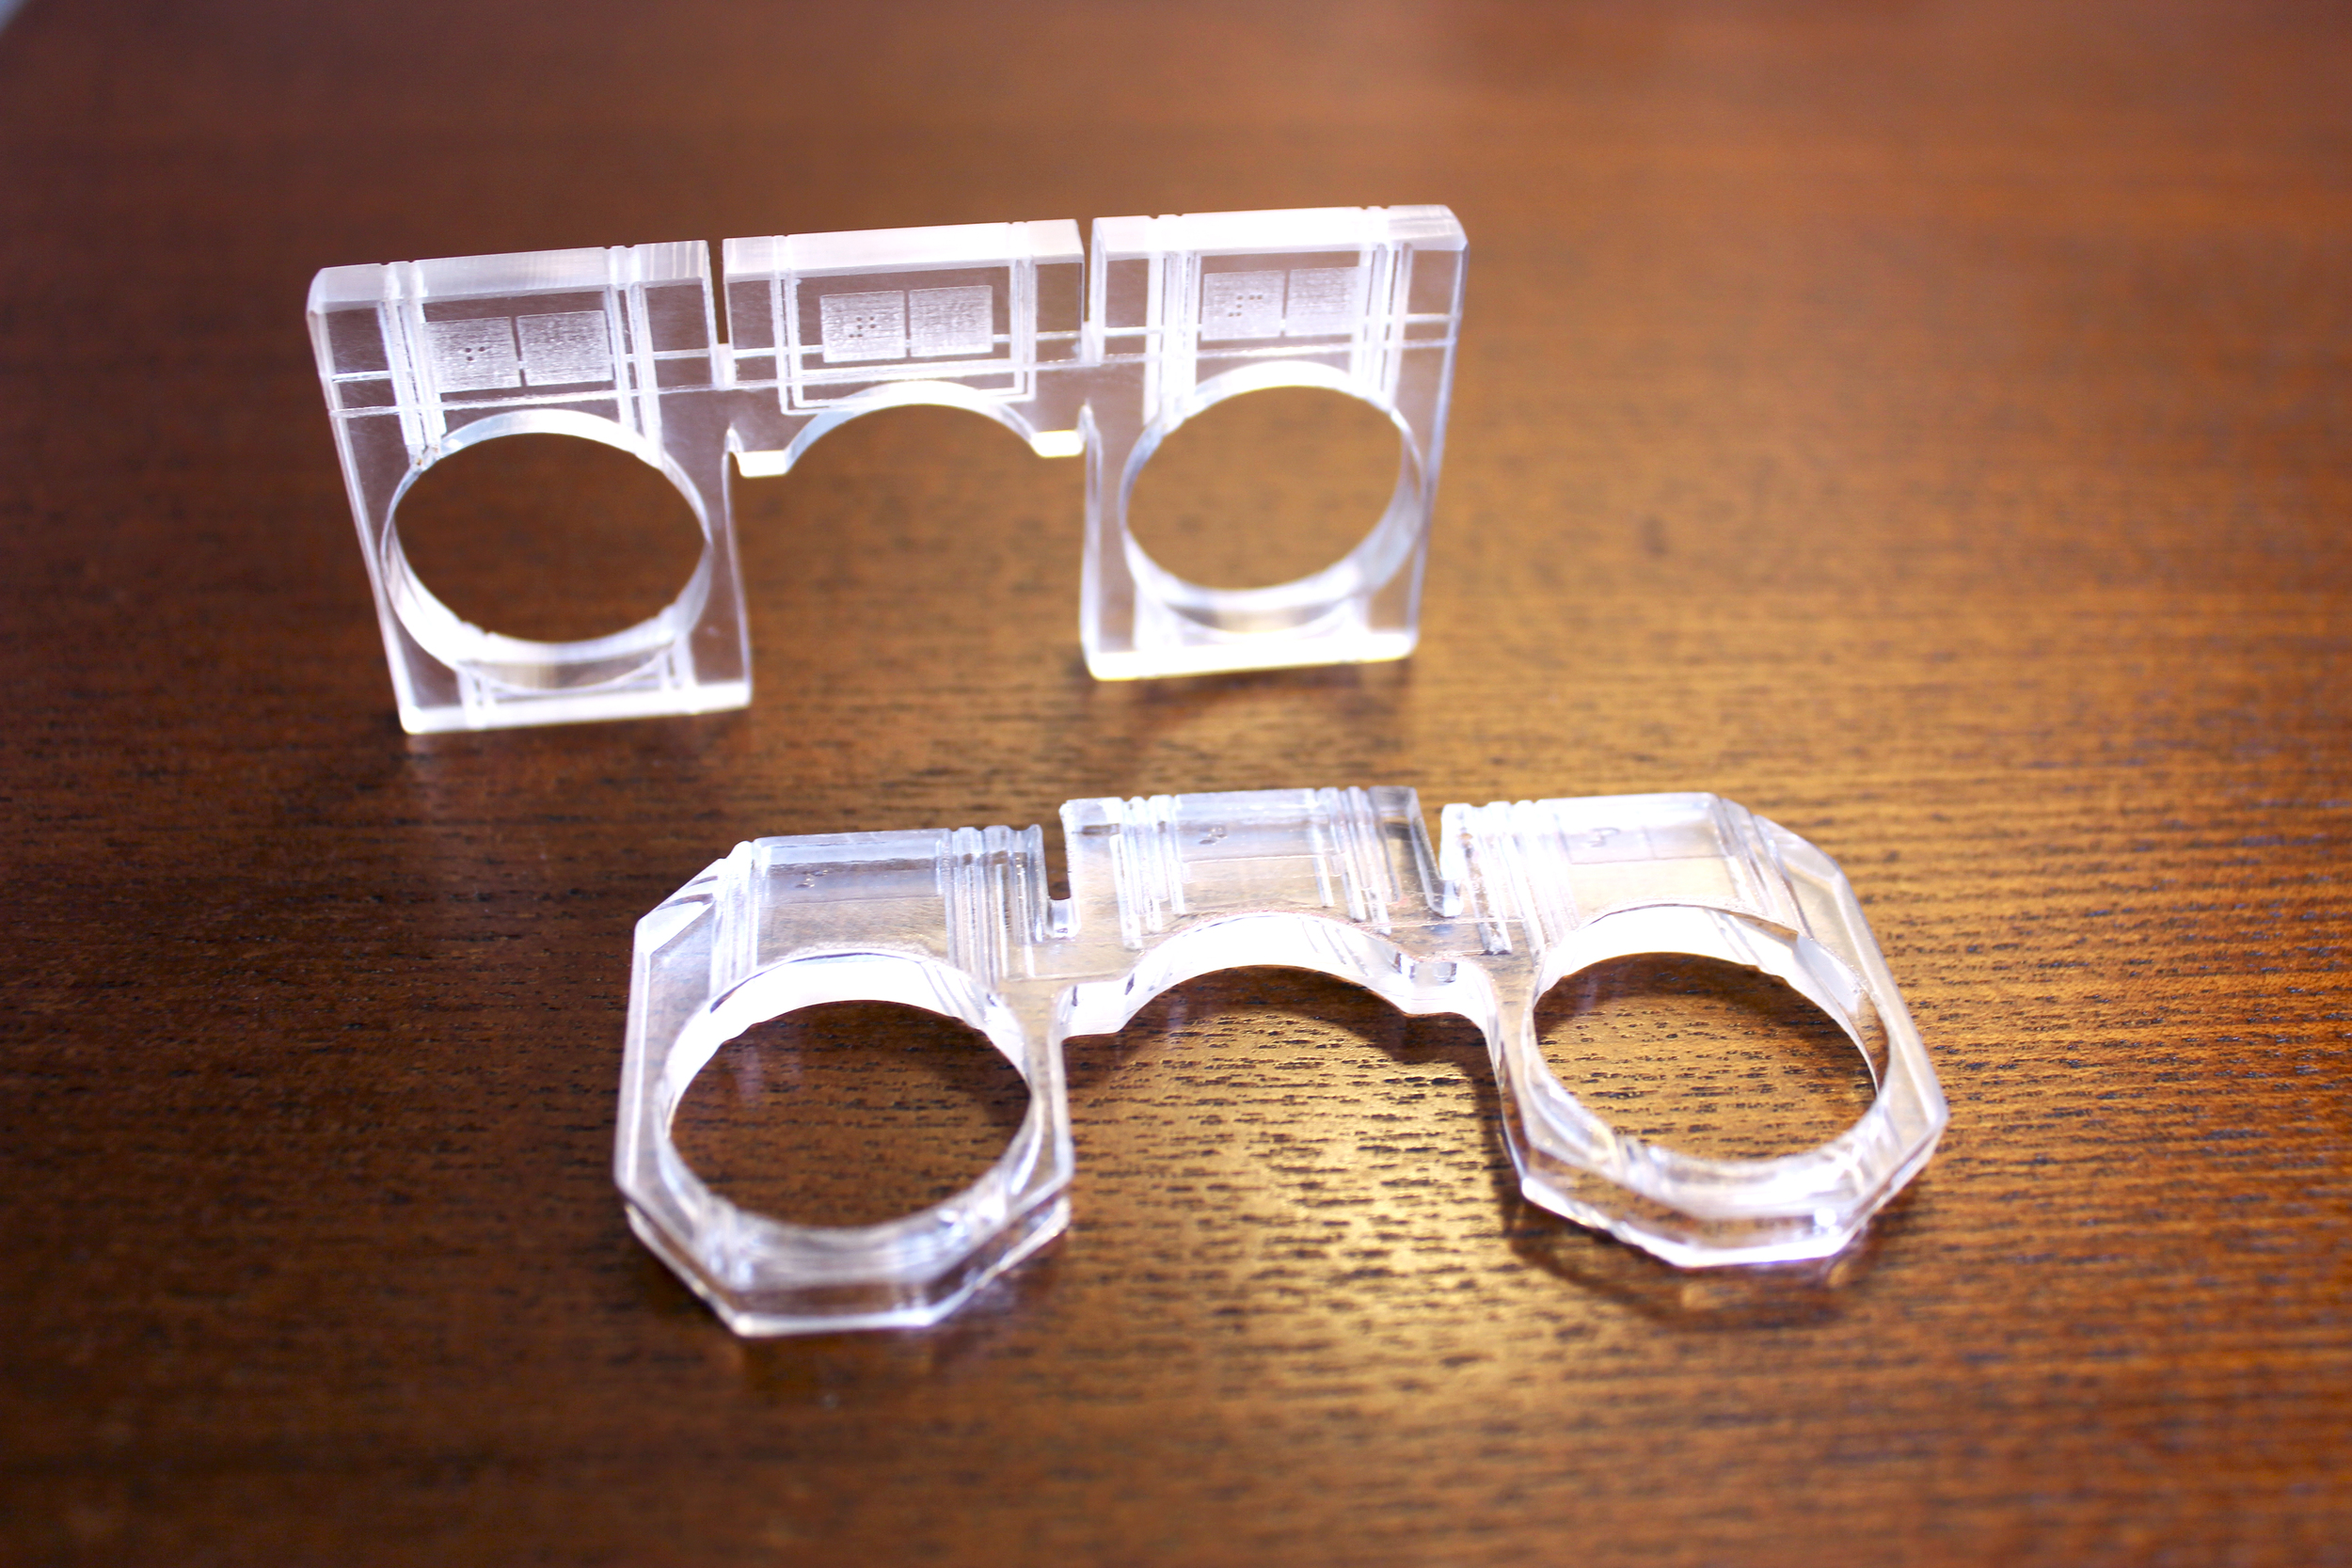 Two Ring Prototypes